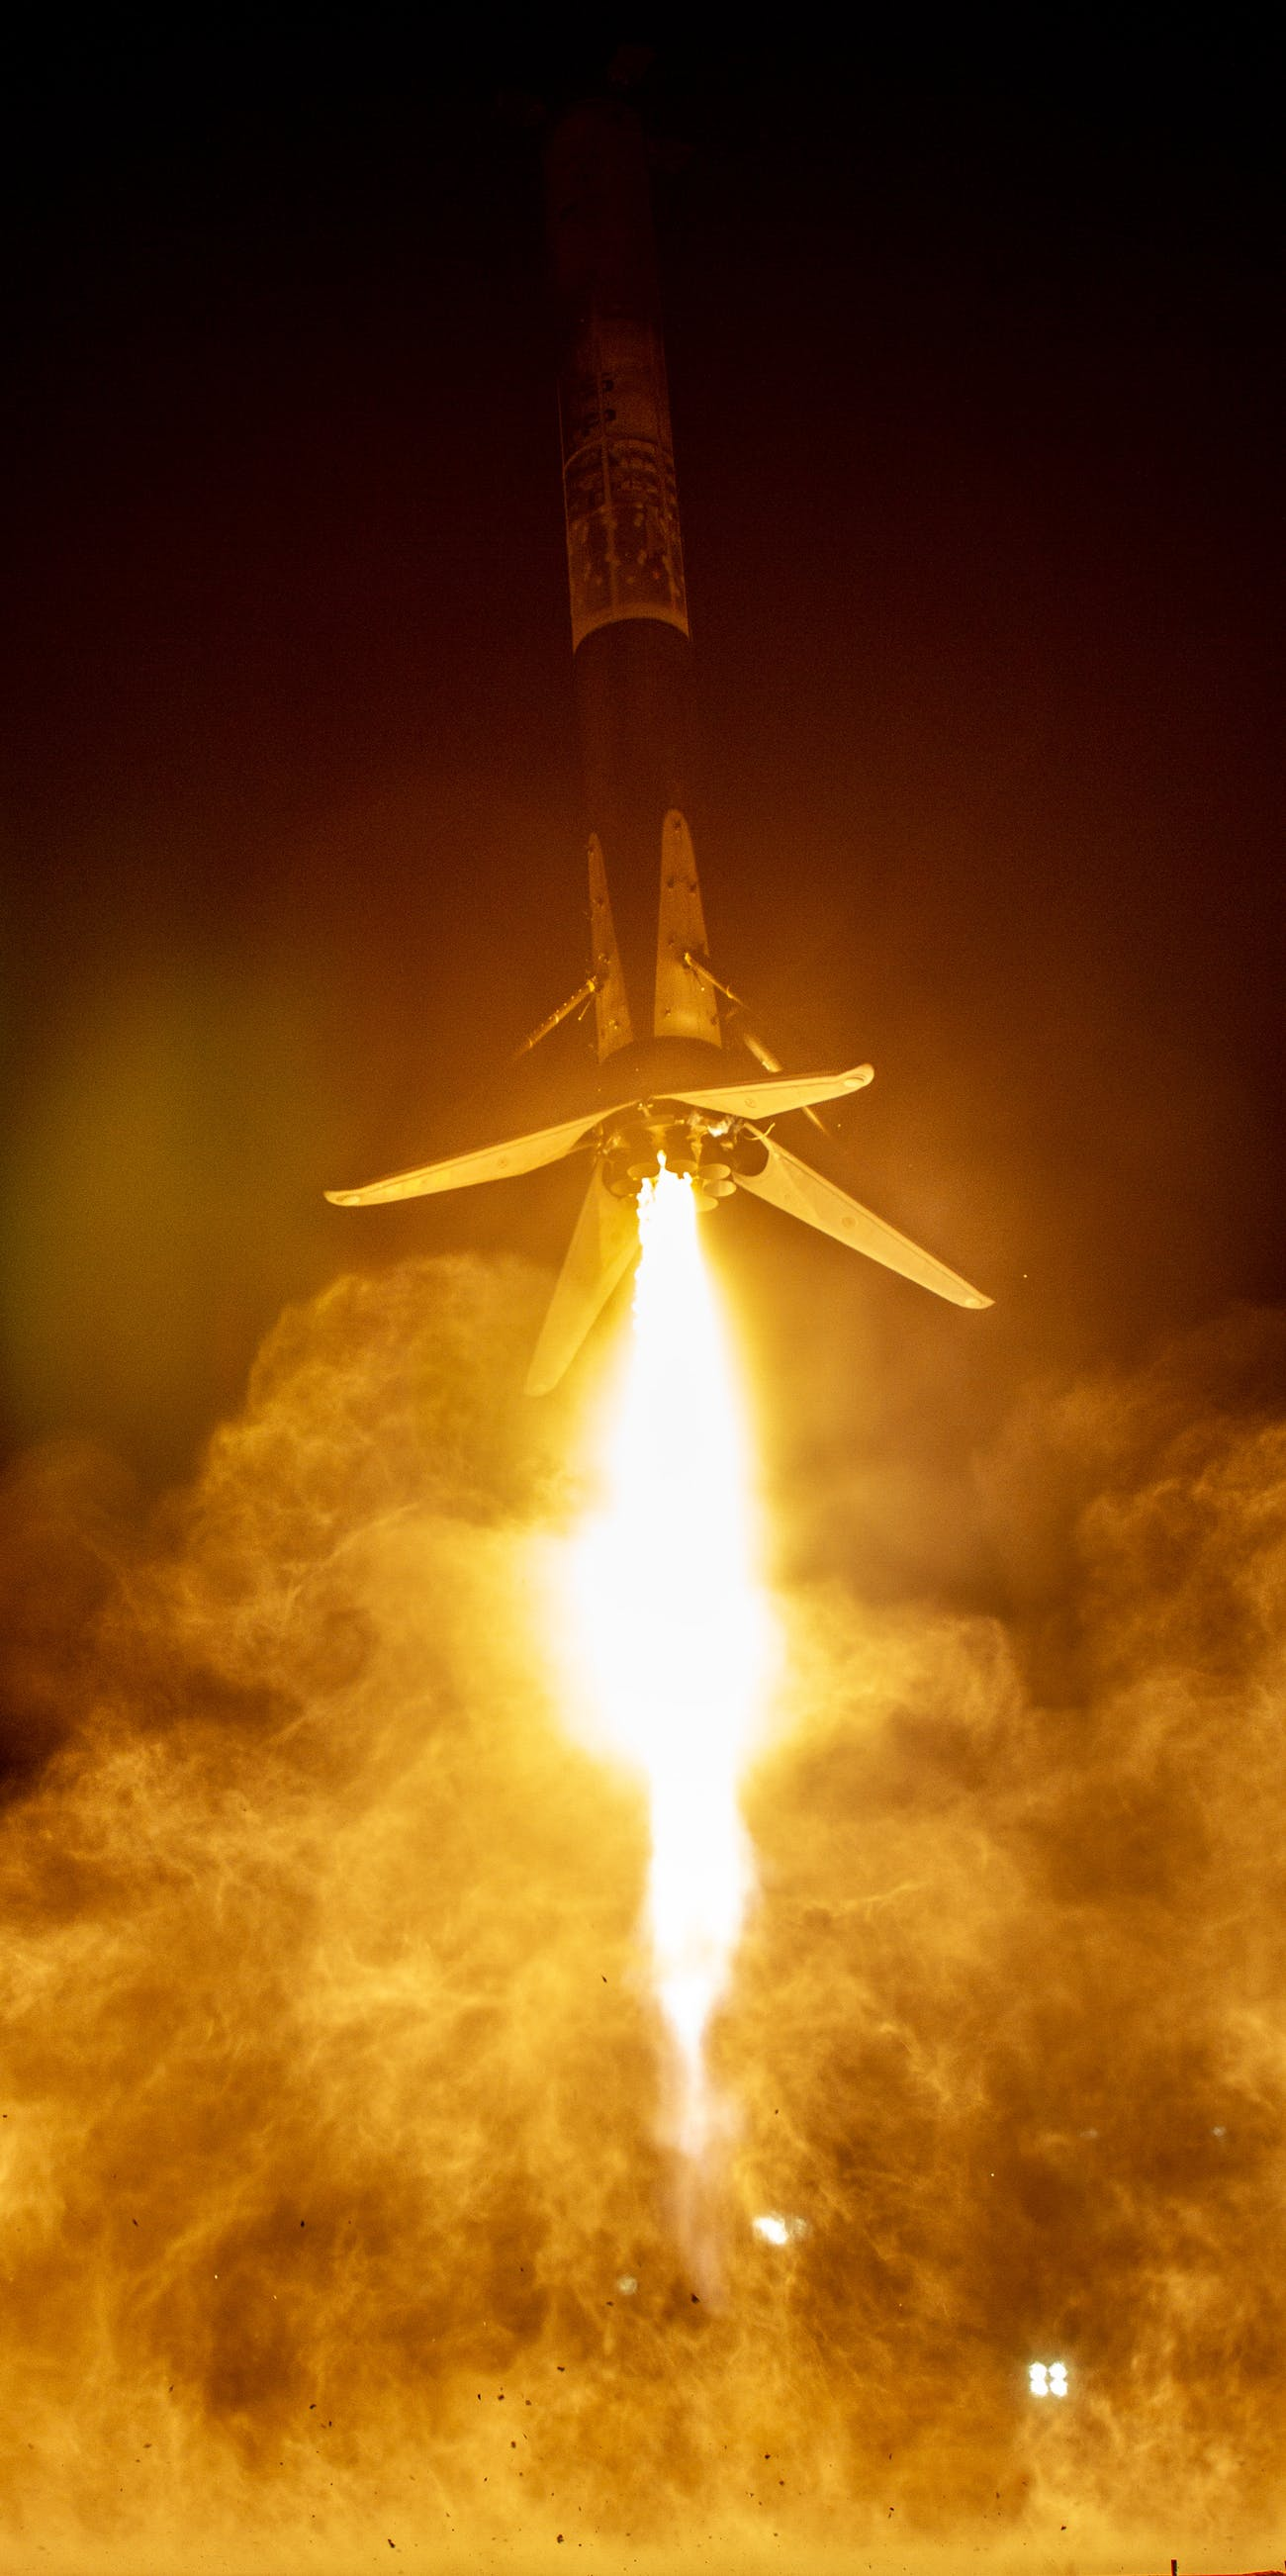 SpaceX's capture of the first stage booster landing.